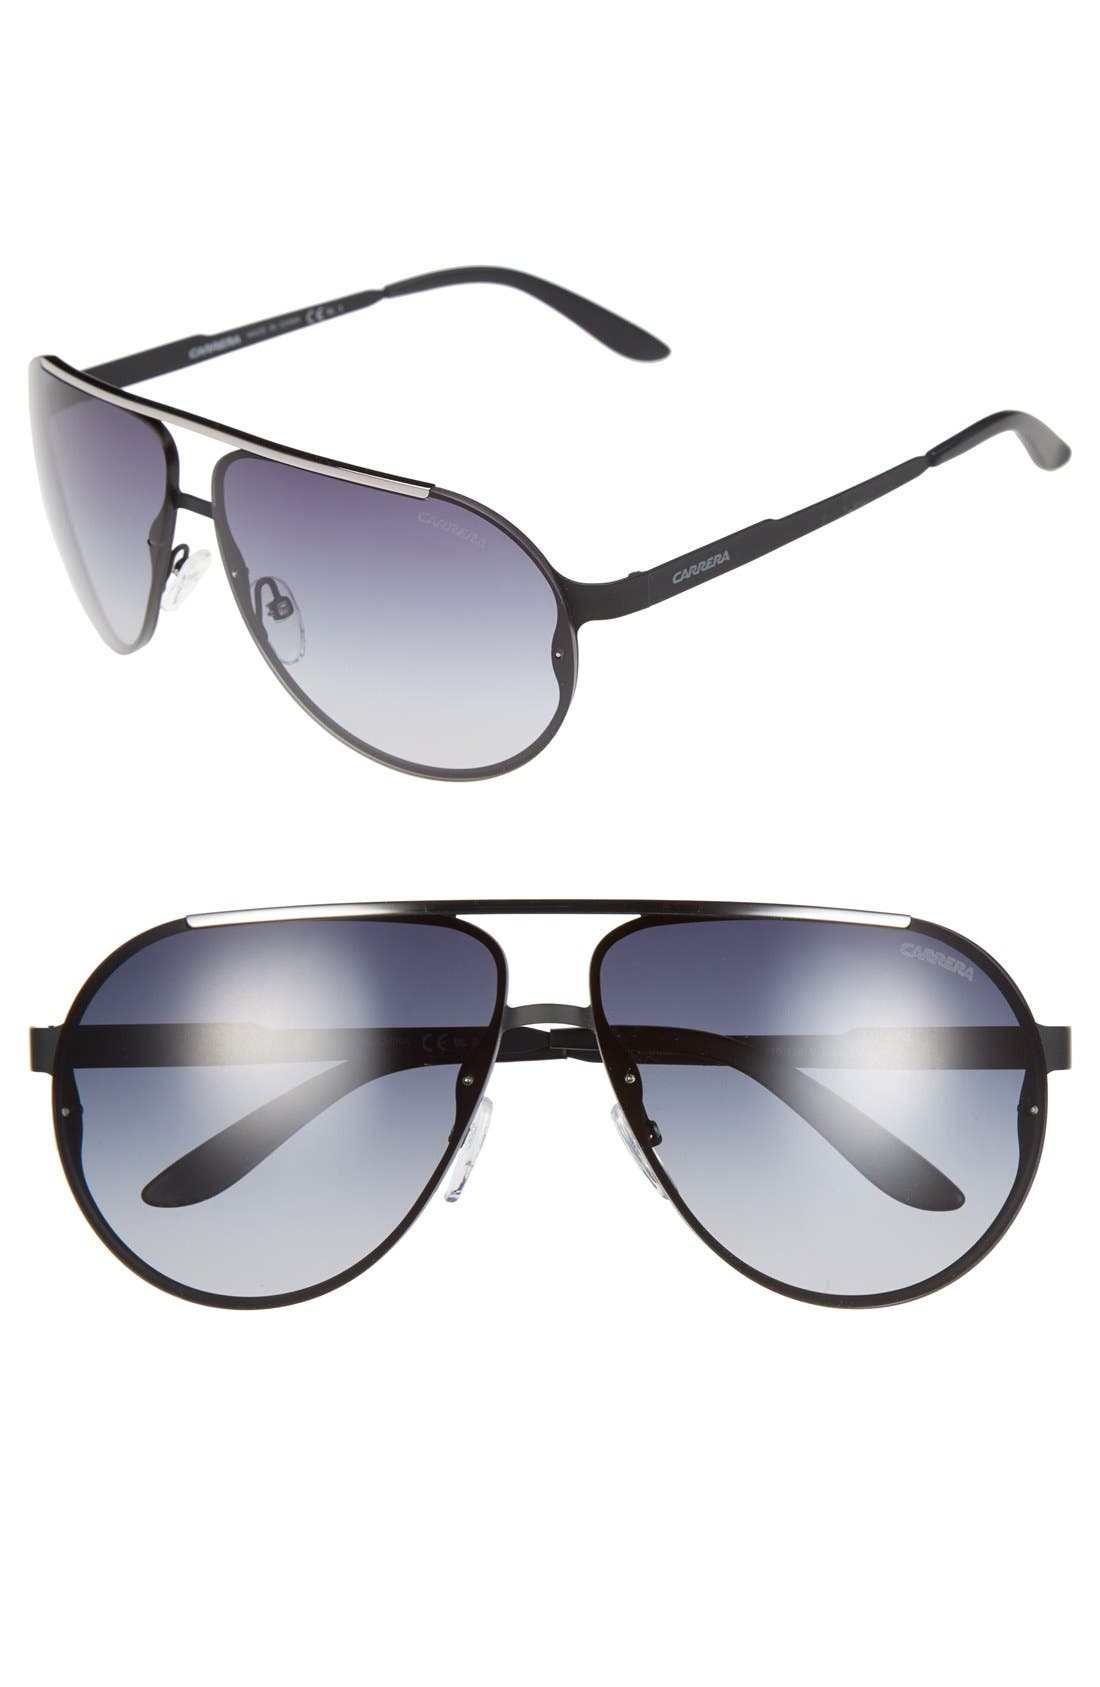 Carrera Eyewear 65mm Aviator Sunglasses